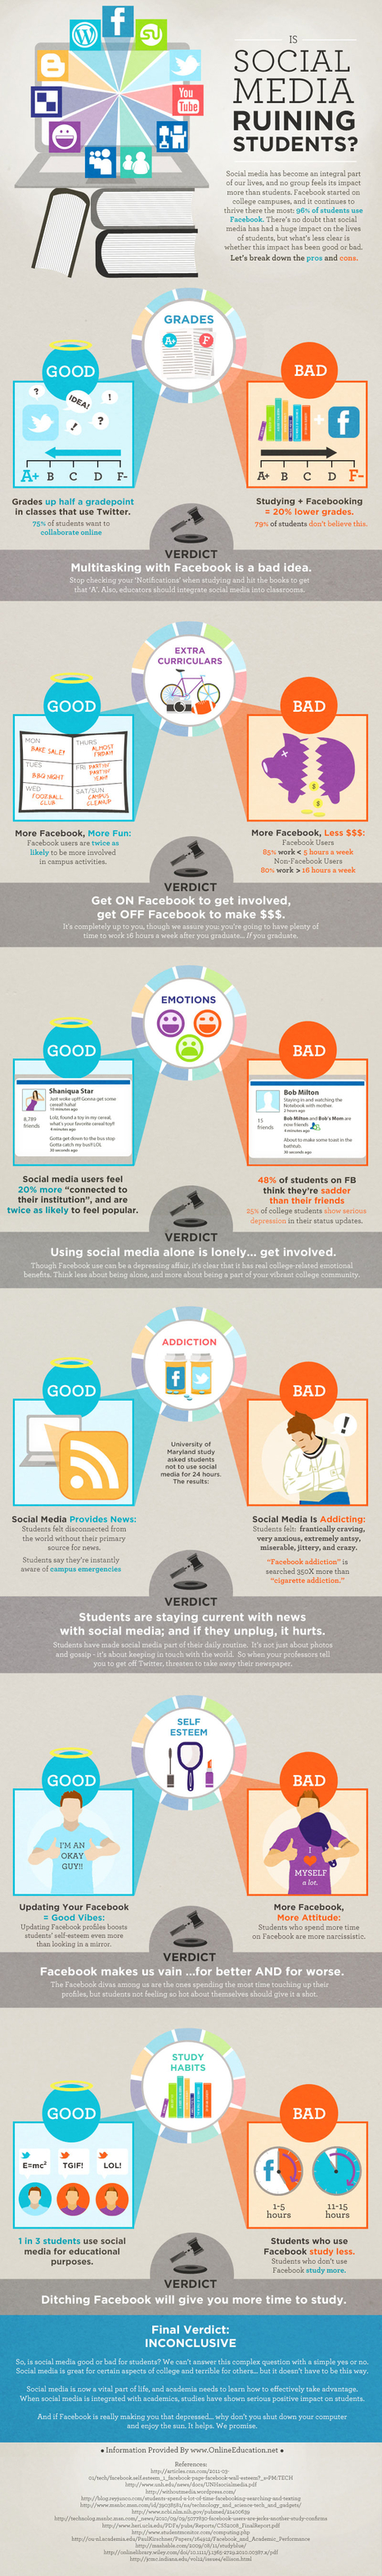 Is Social Media Ruining Students? | Infographics for English class | Scoop.it